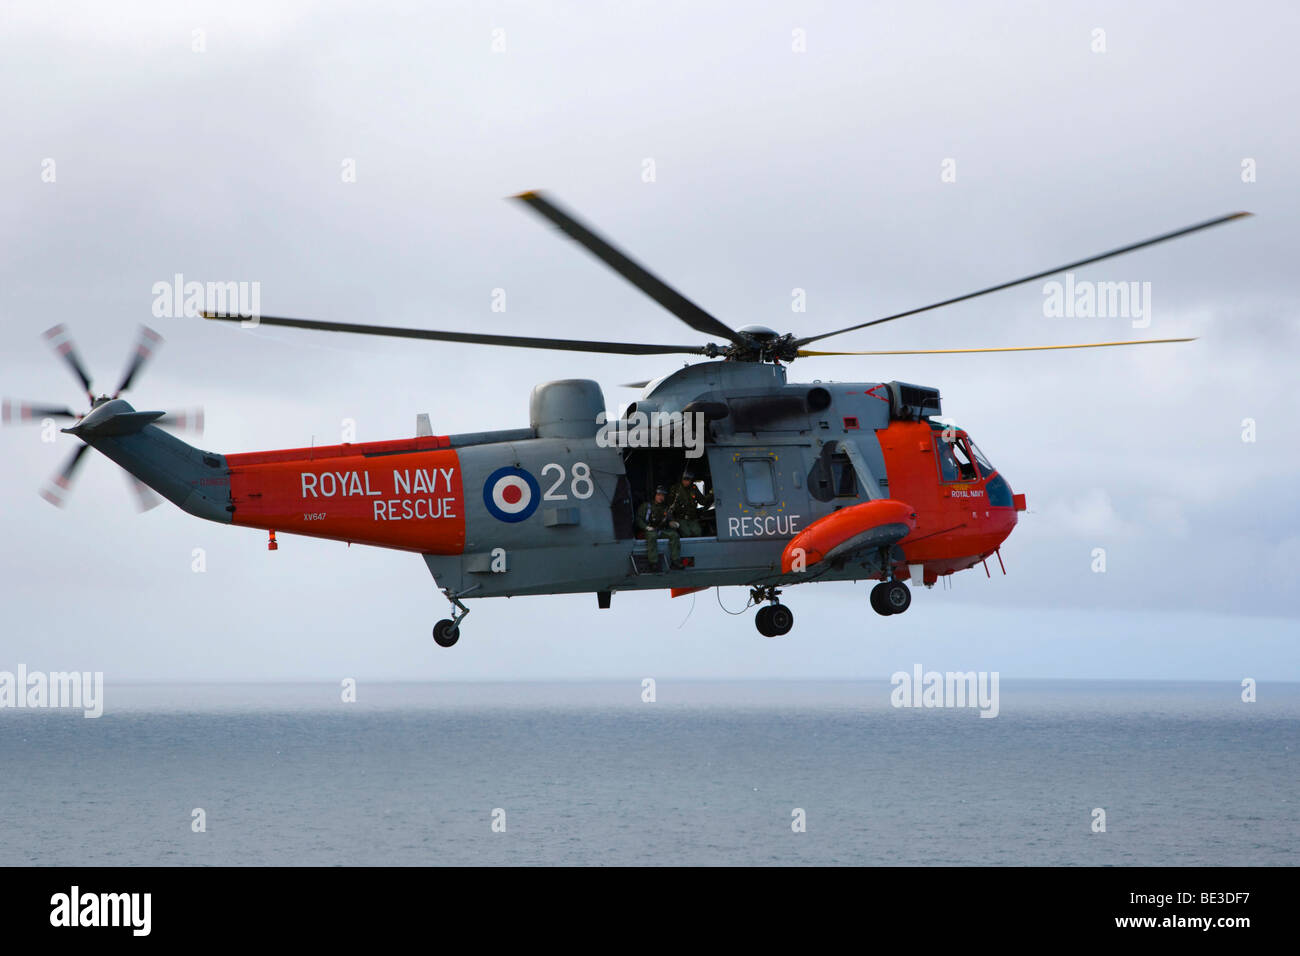 Royal Navy Rescue helicopter, Land's End, Penn an Wlas, Cornwall, England, United Kingdom, Europe - Stock Image